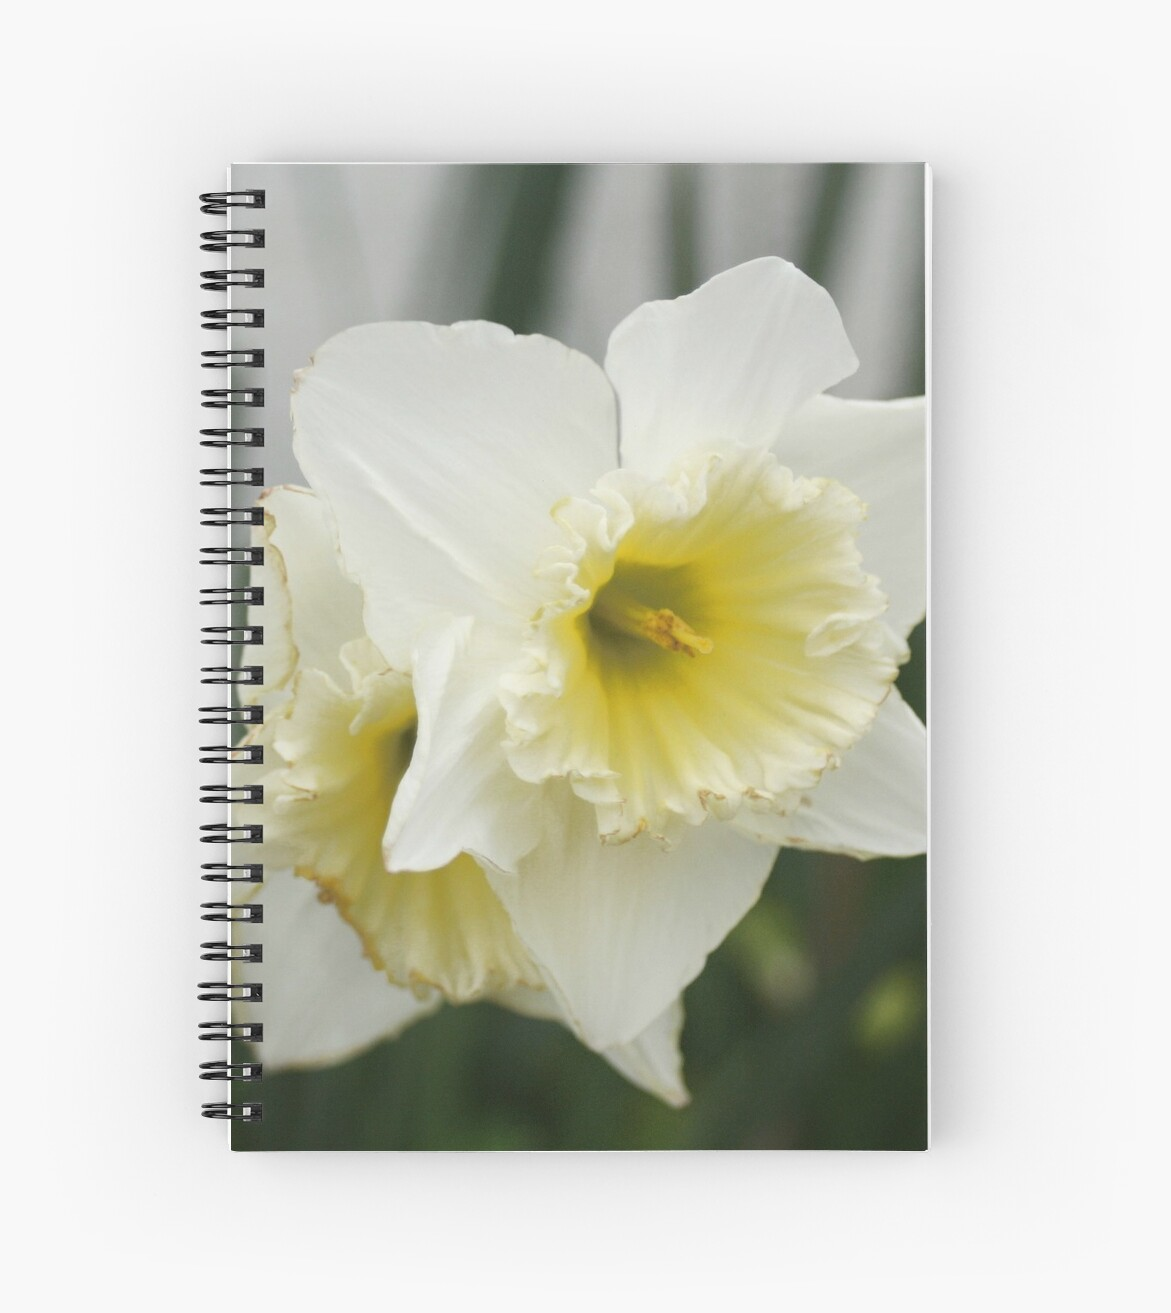 White And Yellow Daffodils Early Spring Flowers Spiral Notebooks